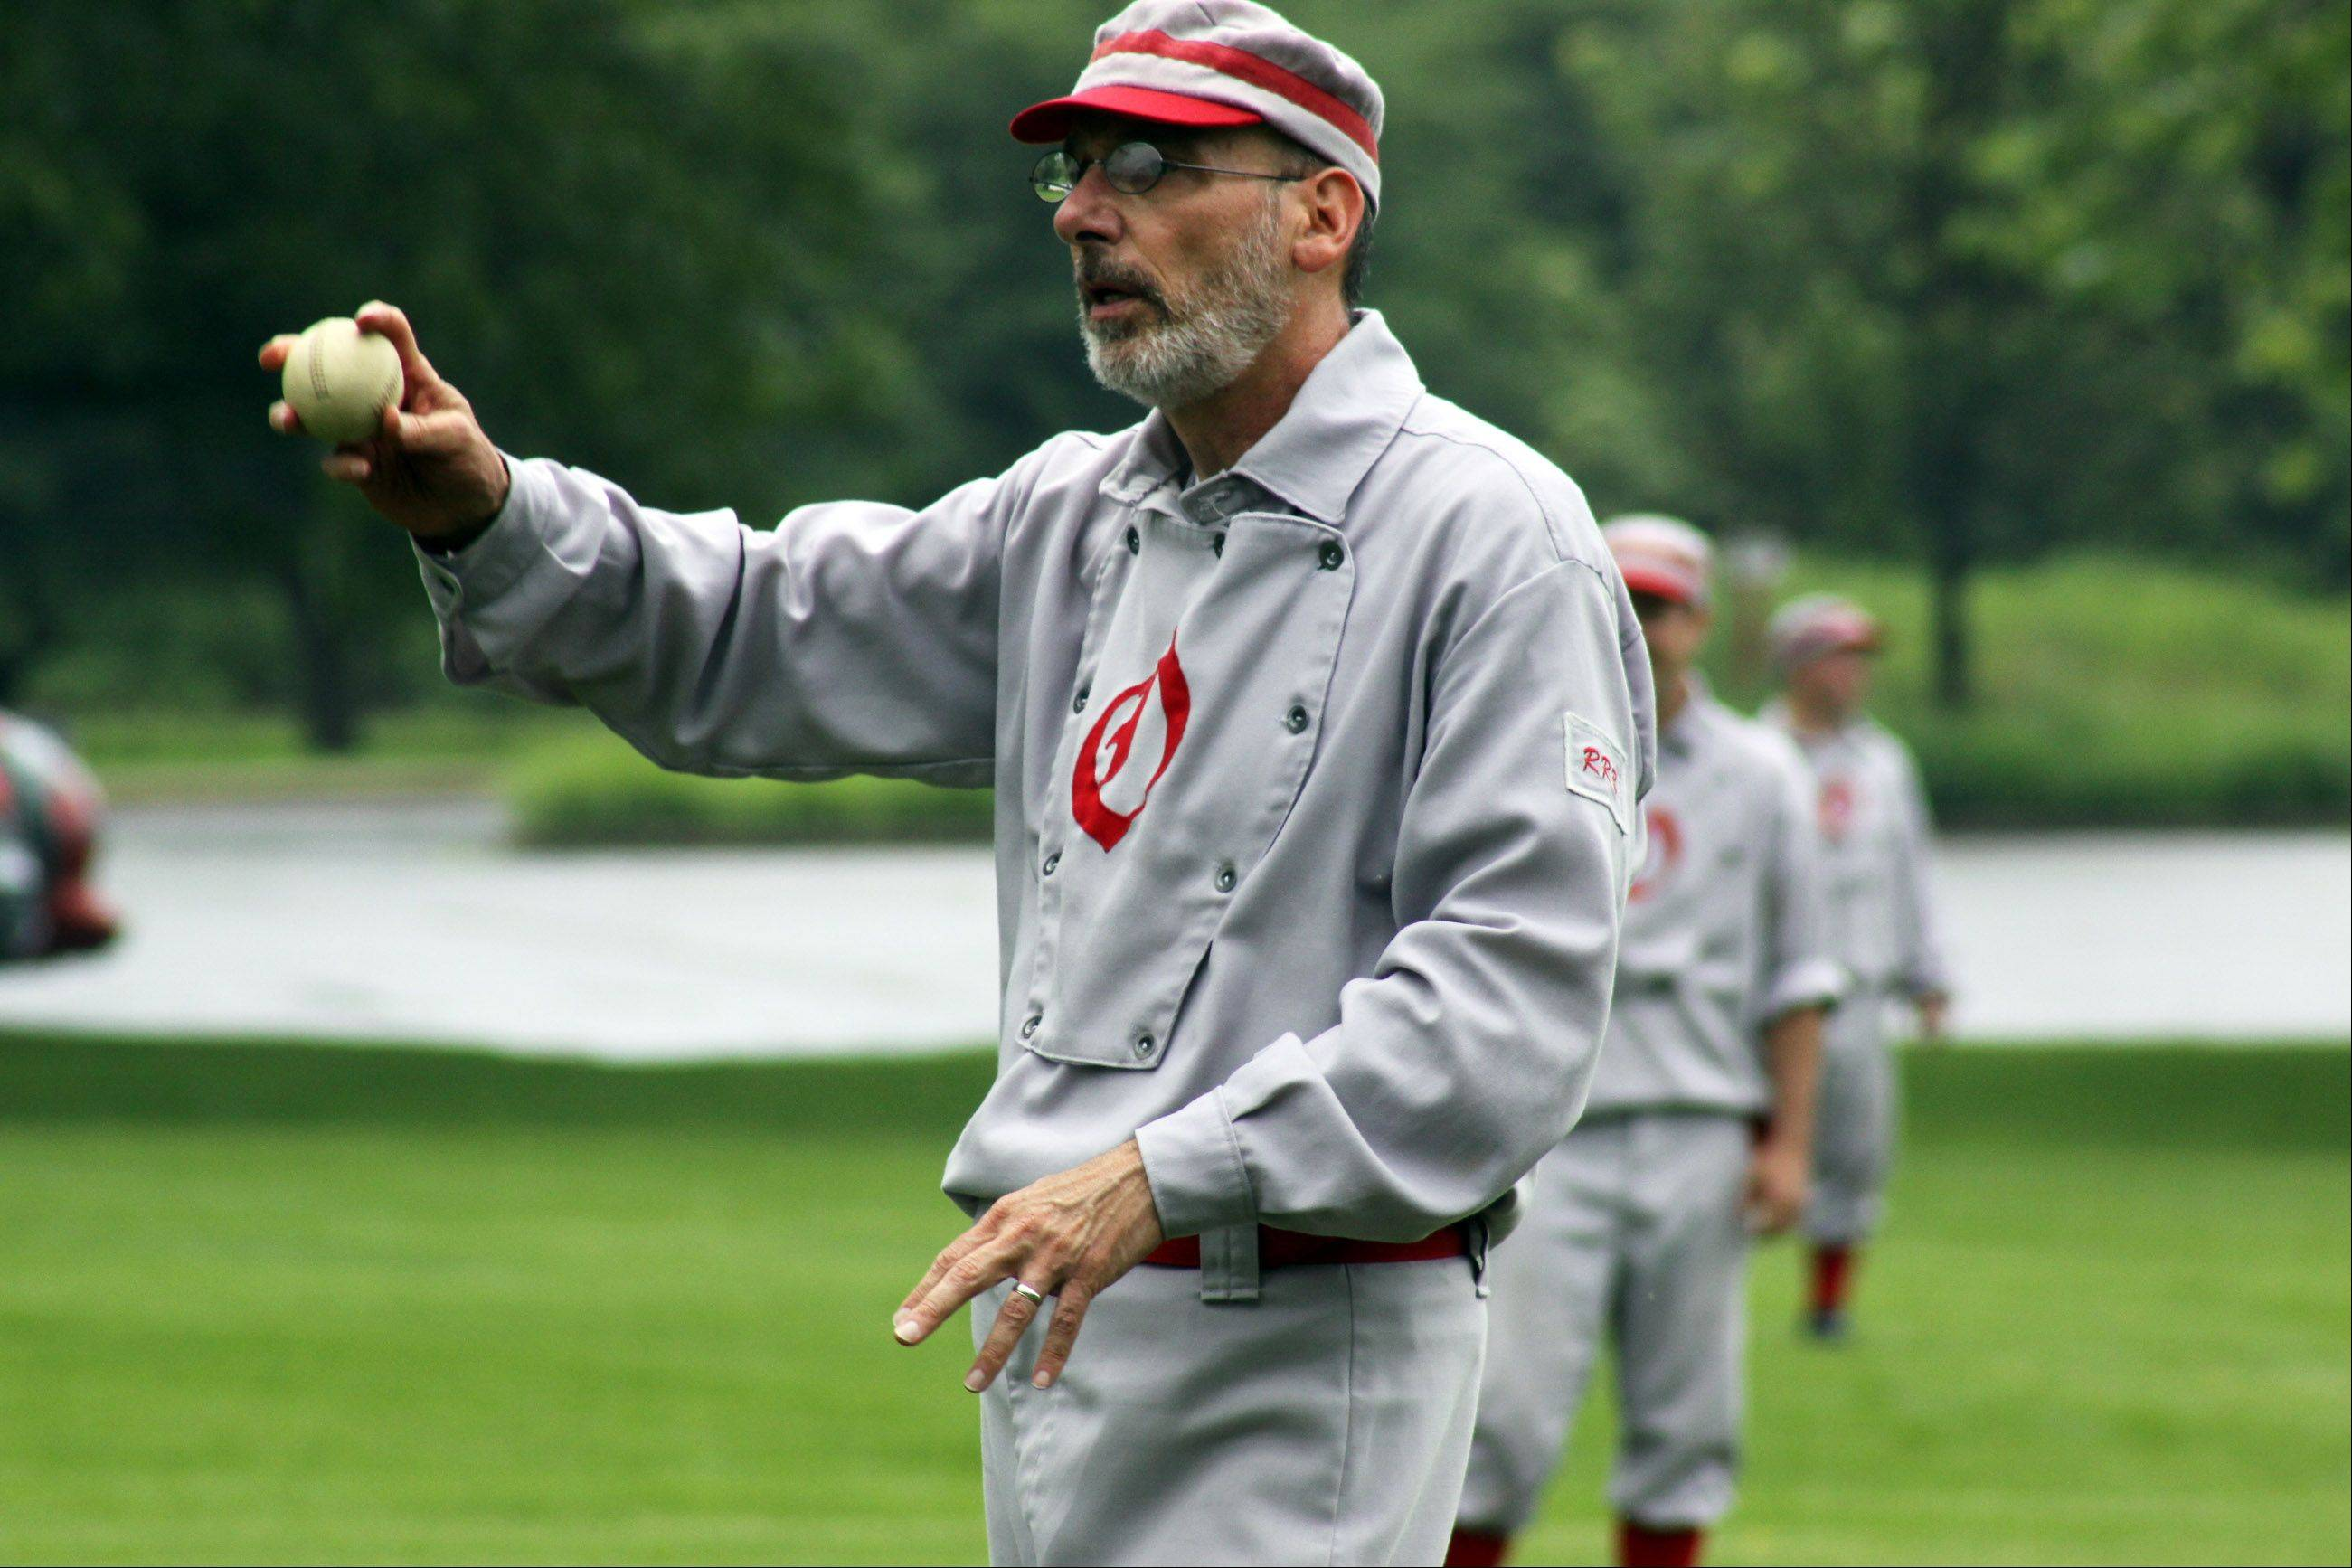 The DuPage County Plowboys, Somonauk Blue Stockings and Oregon Ganymedes will play a round-robin vintage baseball tournament from 11 a.m. to 2 p.m. Sunday, July 23, at Cantigny Park.